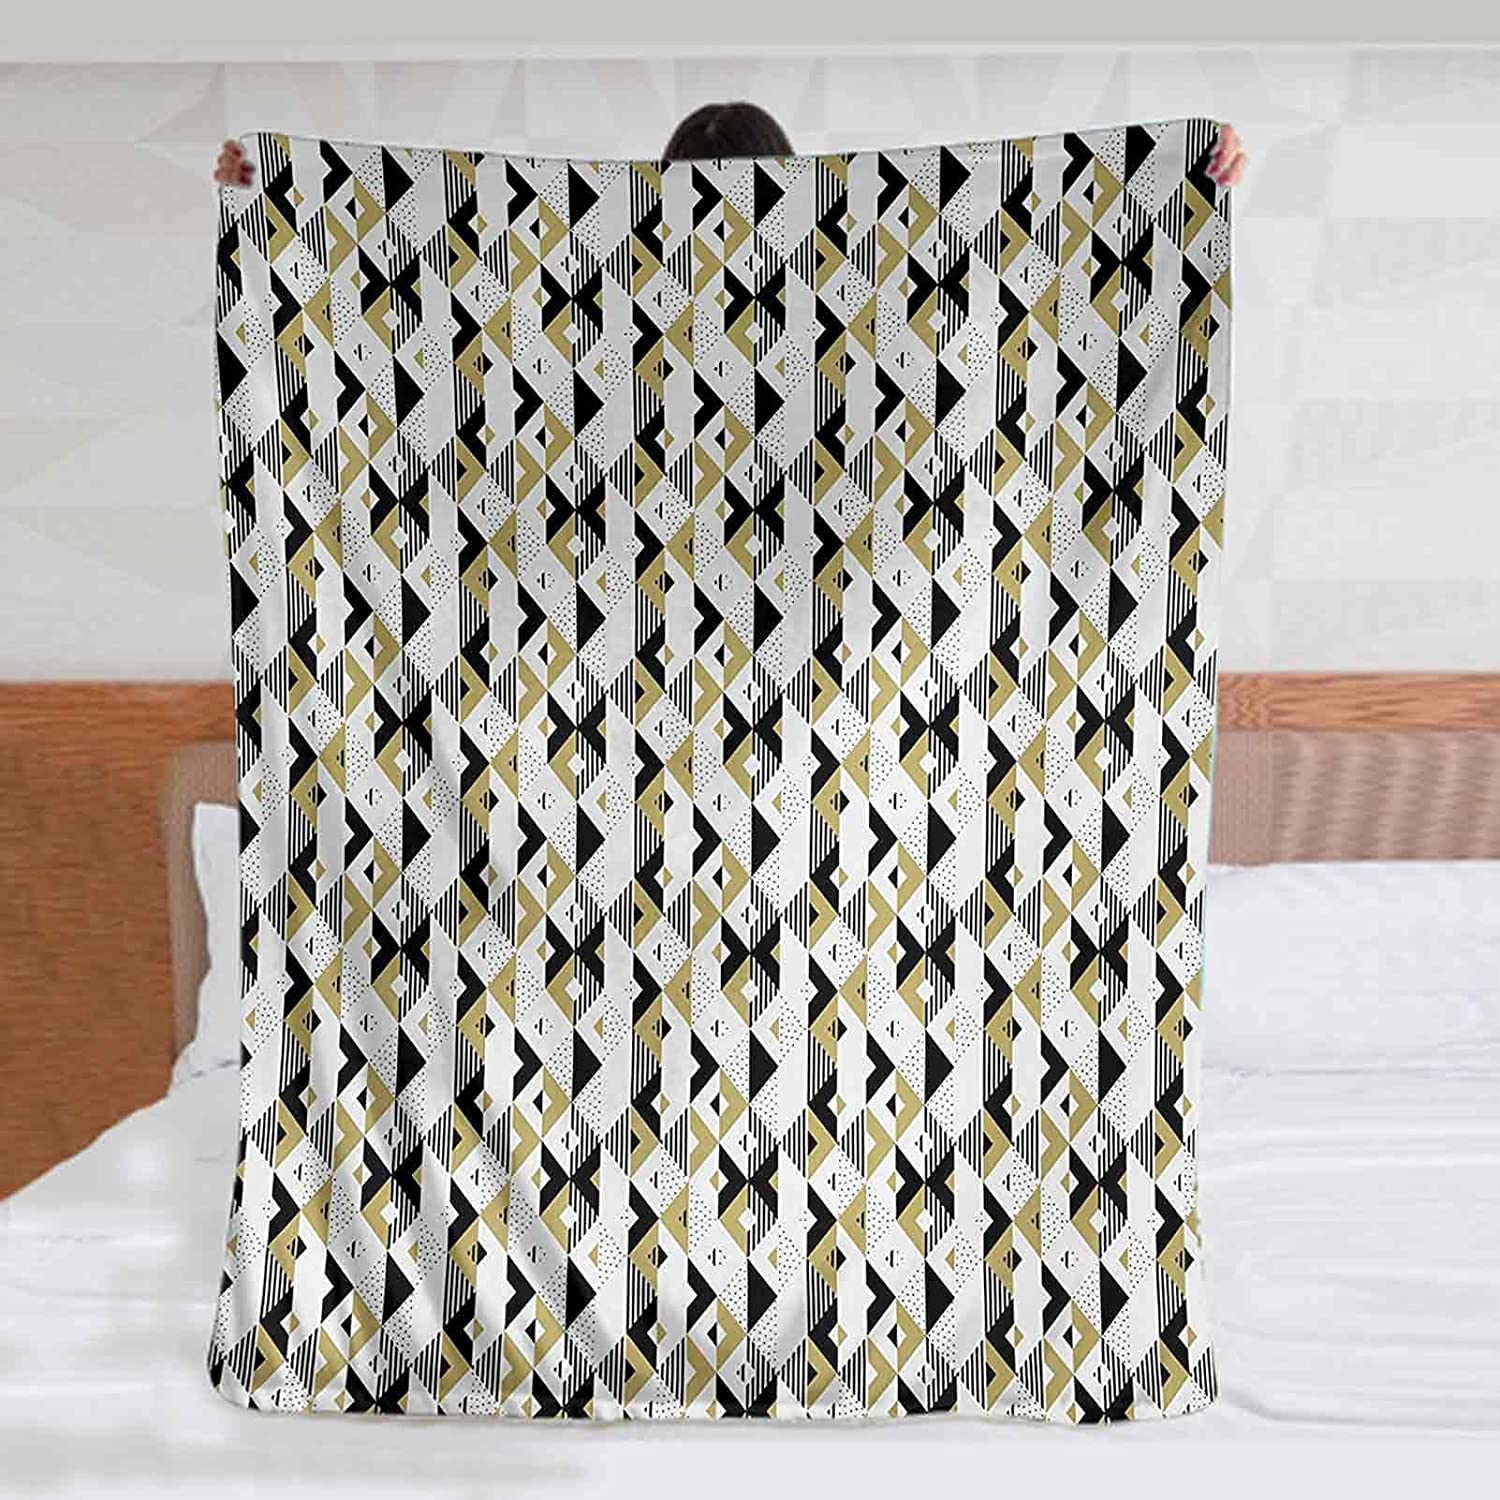 Geometric Cooling Blanket for Dogs 40